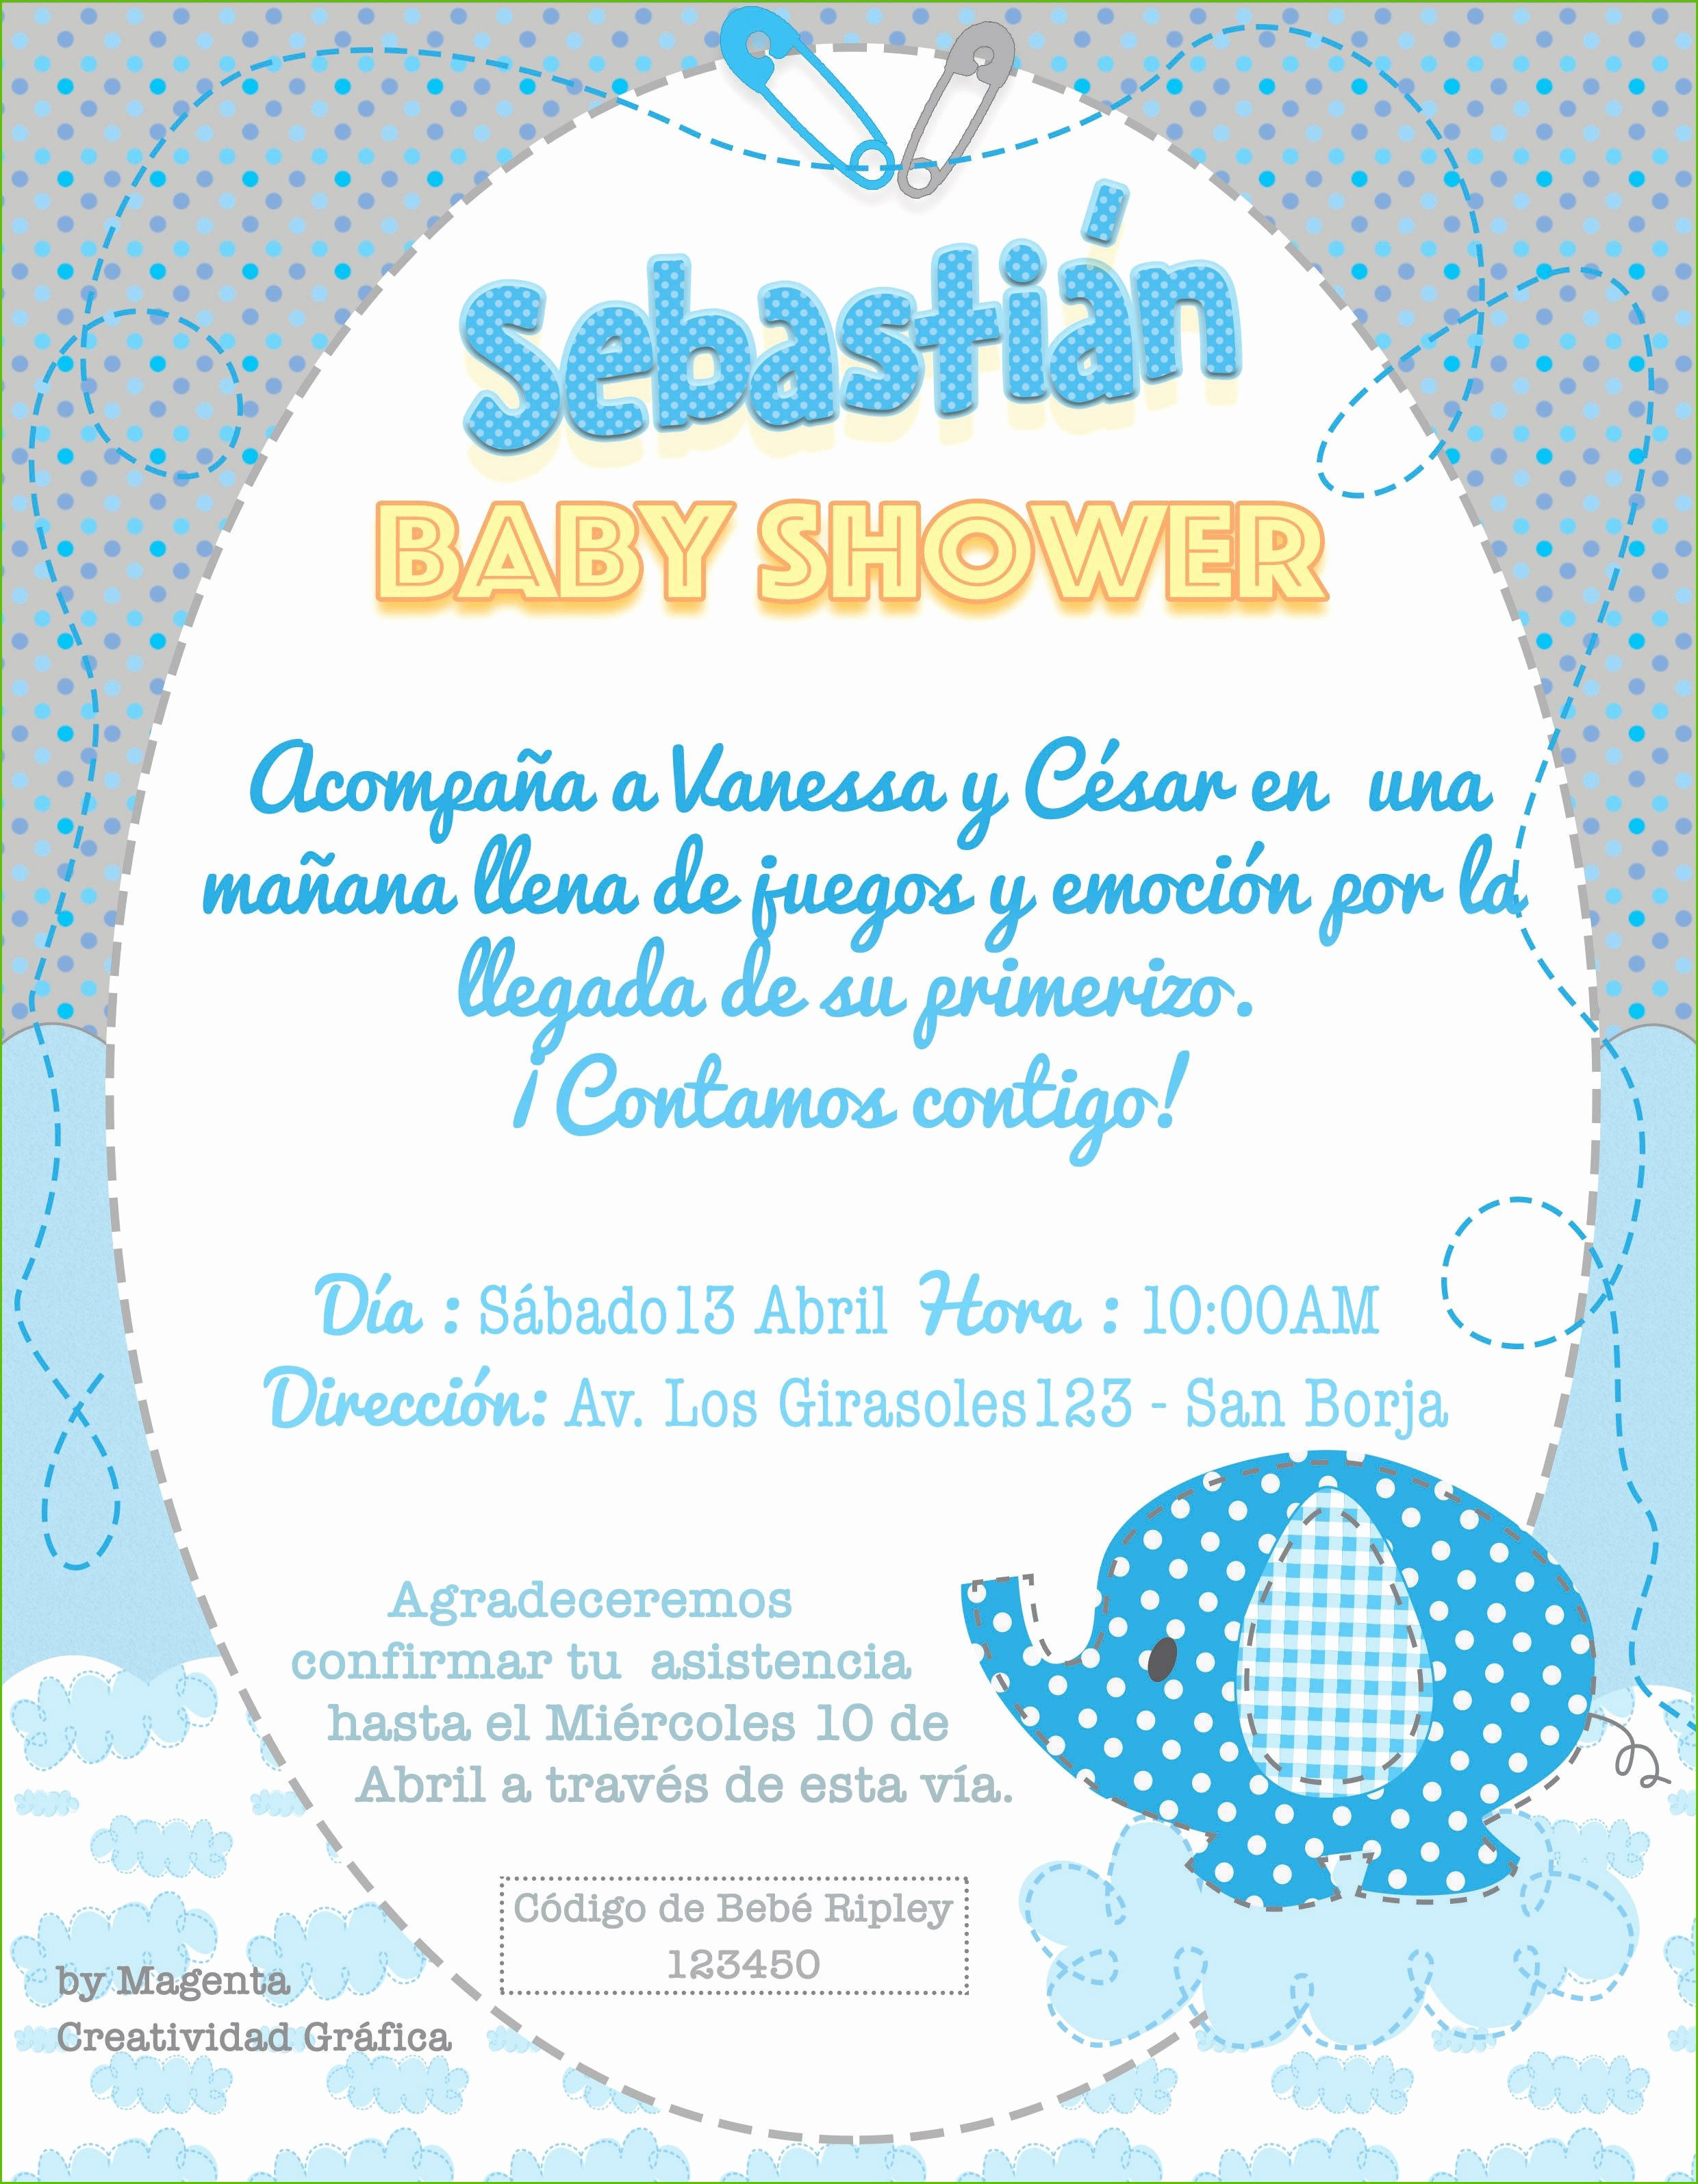 Beautiful Invitaciones De Baby Shower Niño Best Invitaciones Para Baby Shower intended for Invitaciones Para Baby Shower De Niño